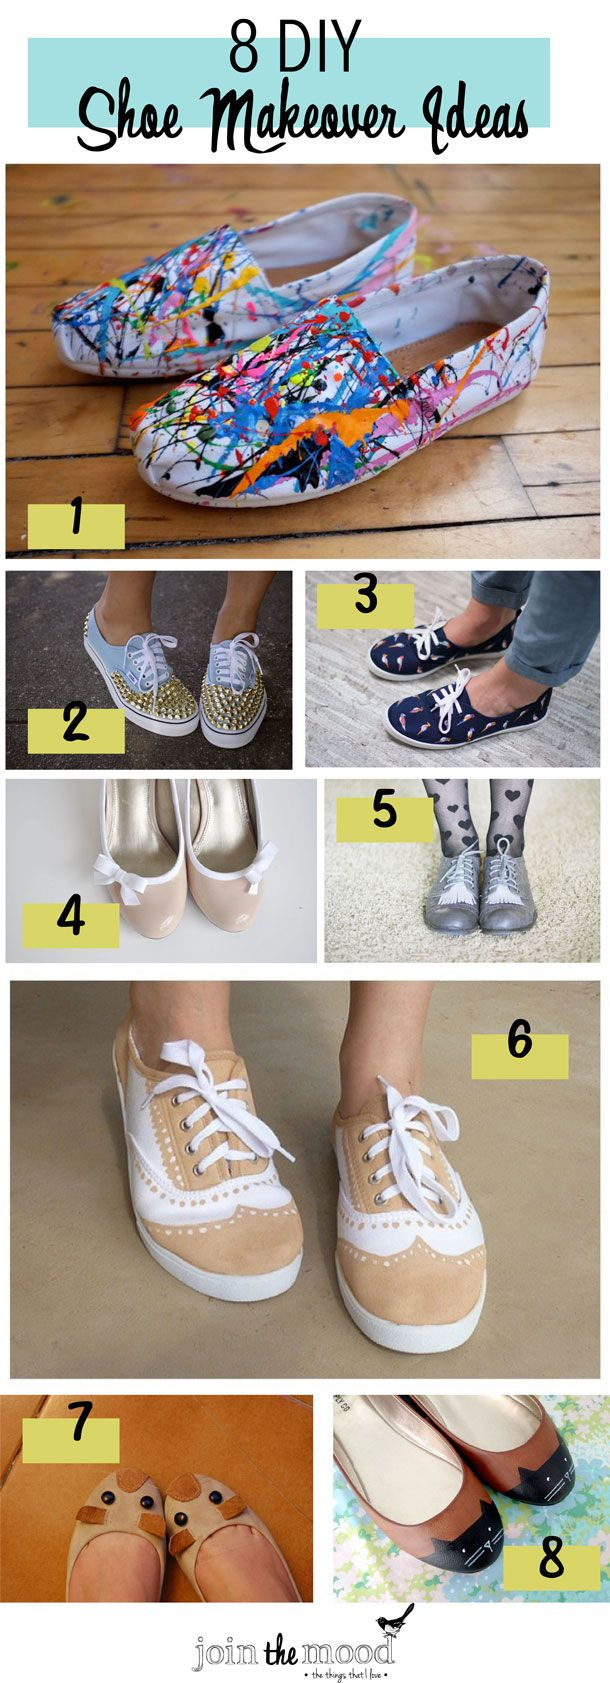 230 best diy footwear images on pinterest | diy, appliques and board